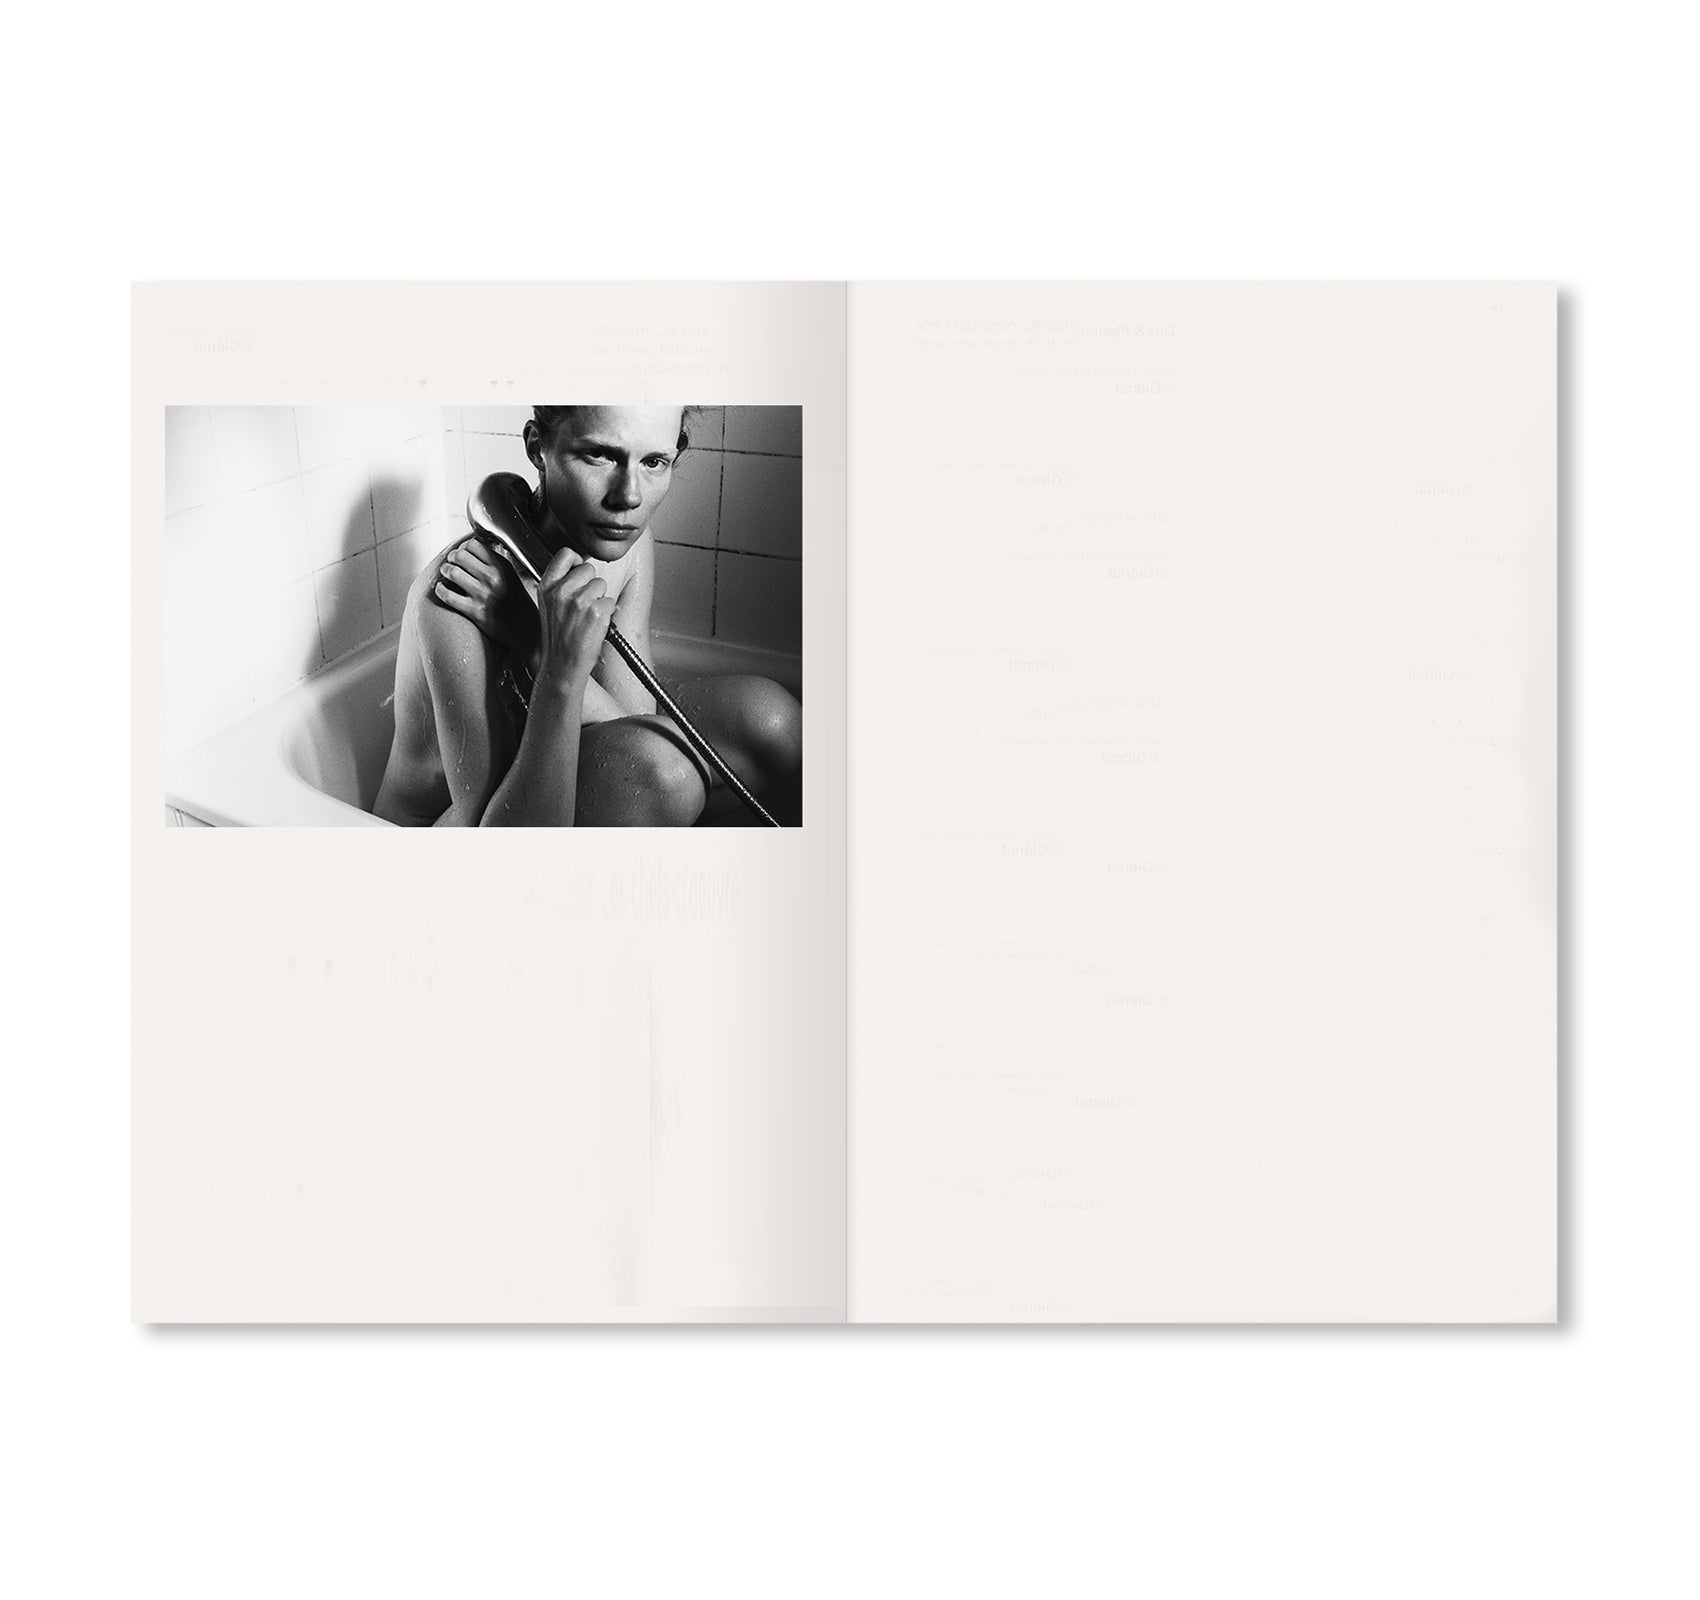 MY PHOTO BOOKS by Lina Scheynius